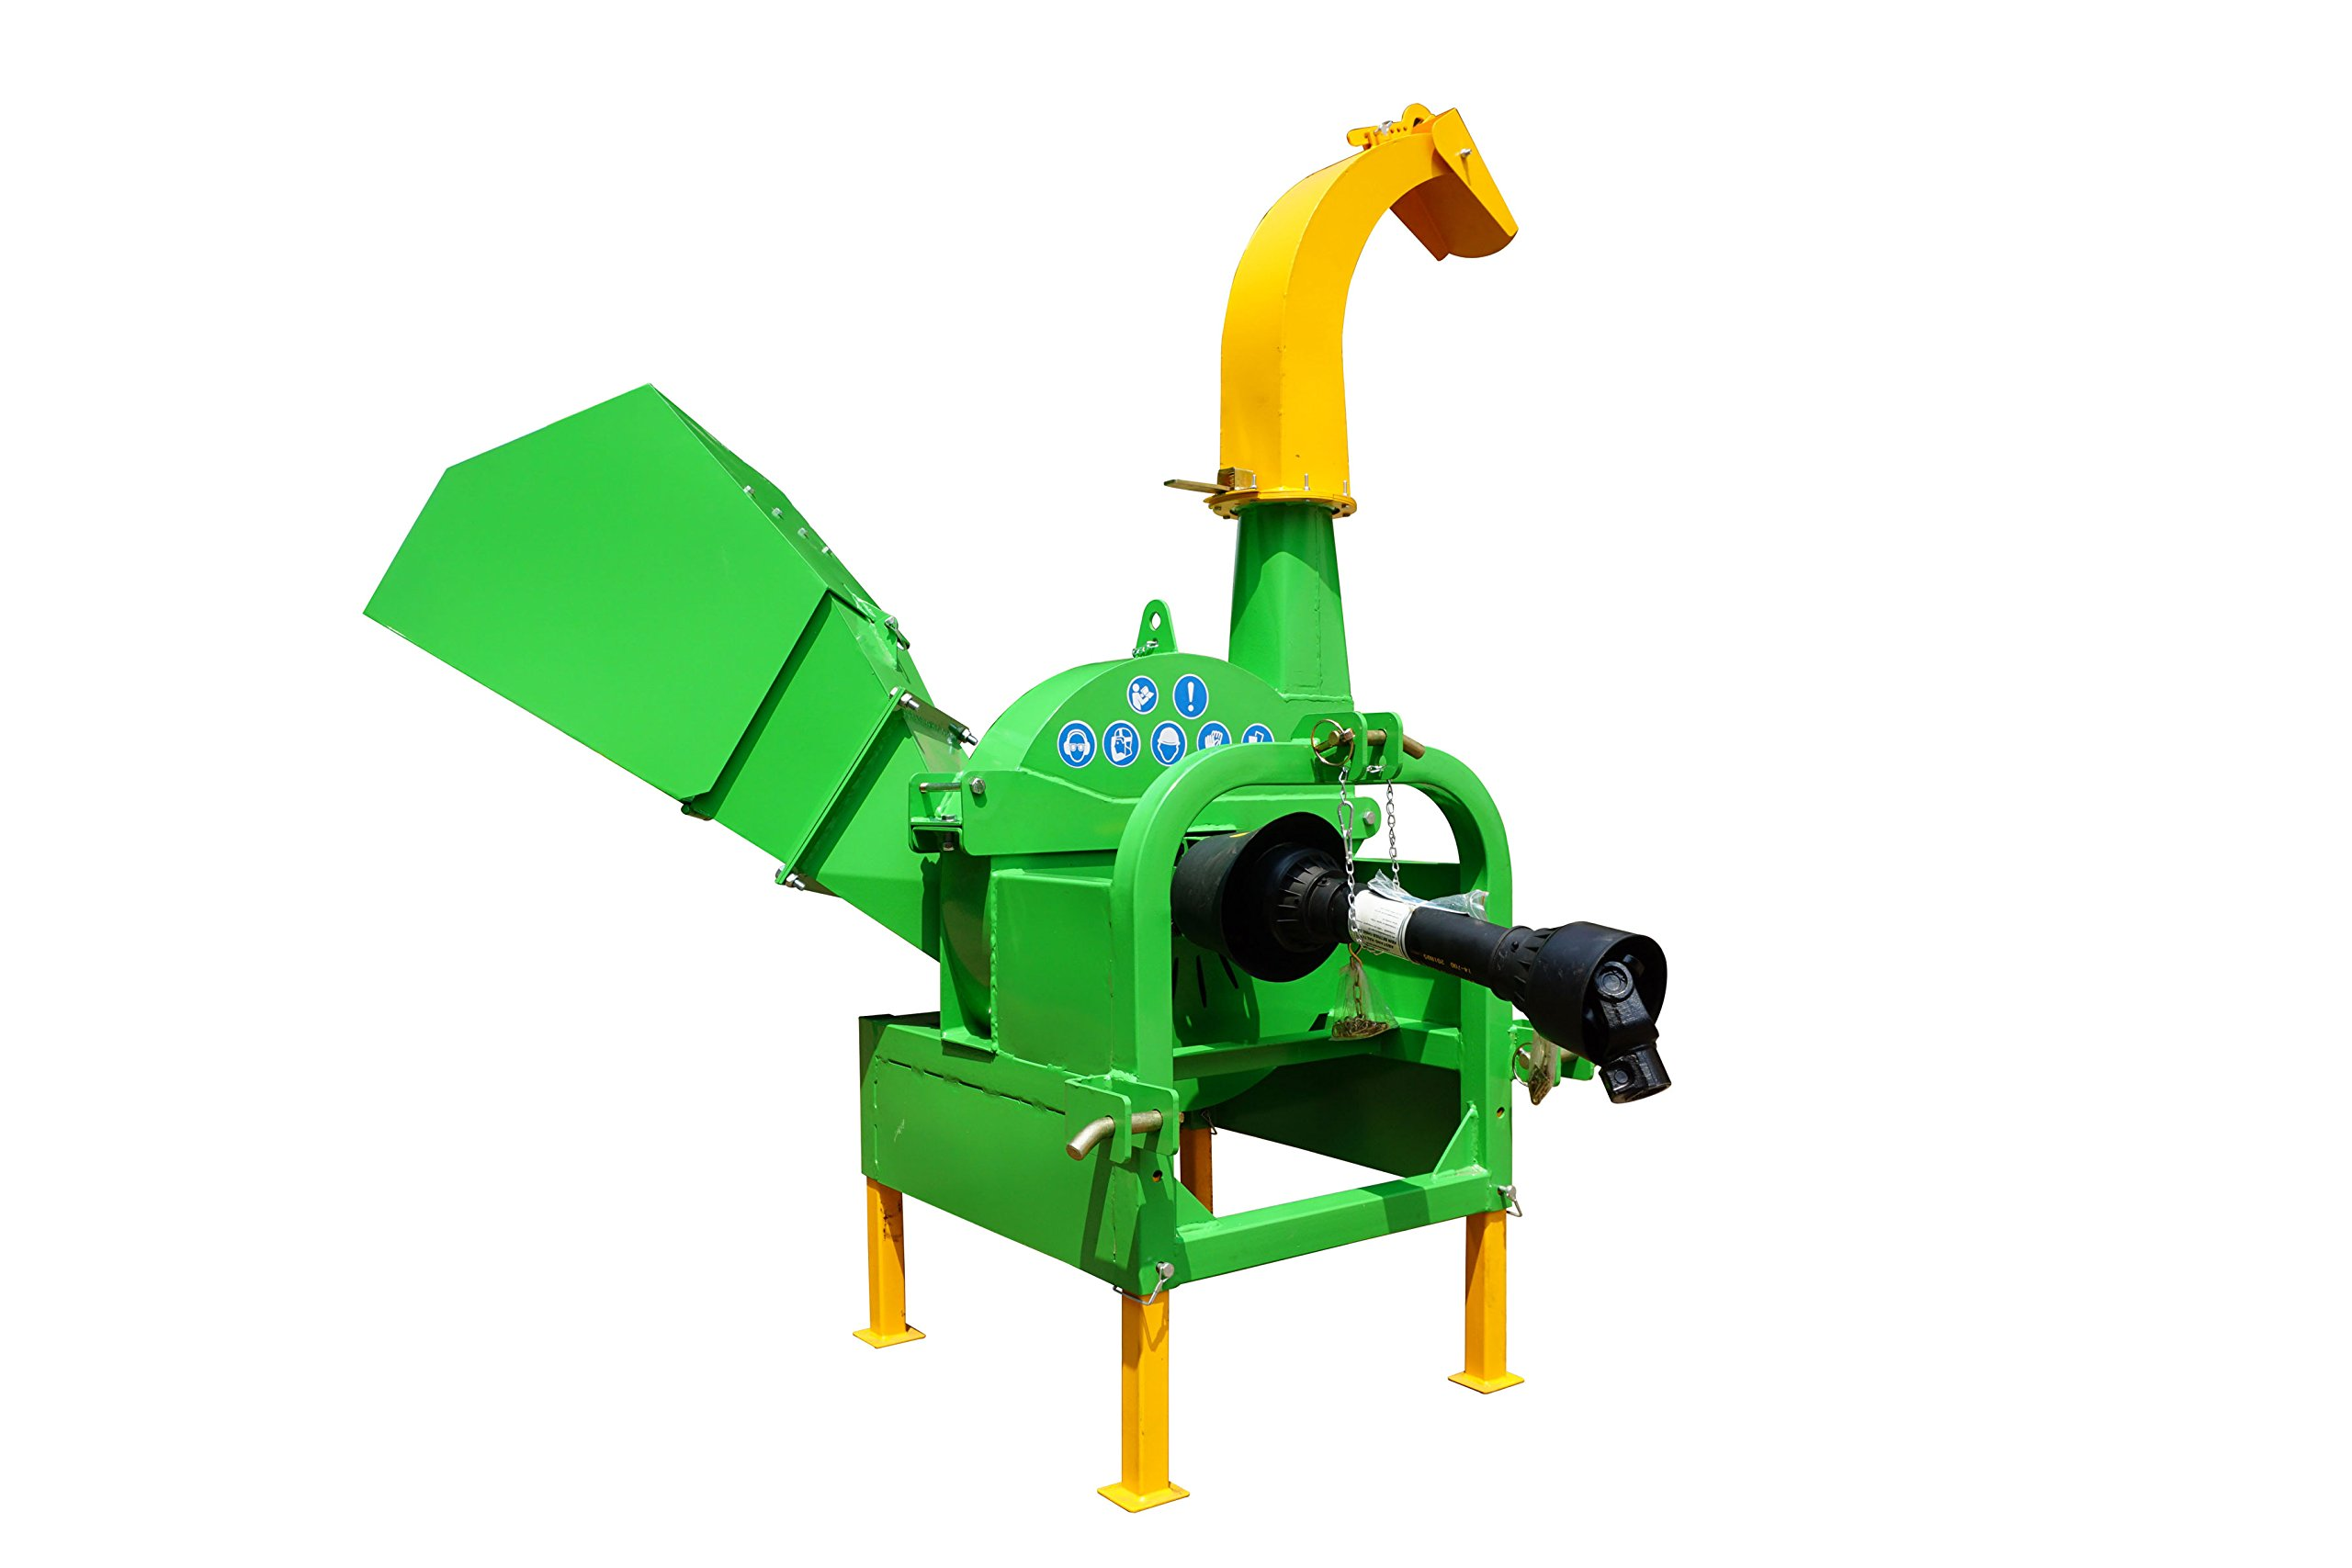 NOVA TRACTOR BX52 Model 5'' Wood Chipper Shredder, Cat I 3pt, for Tractor from 18 to 50HP